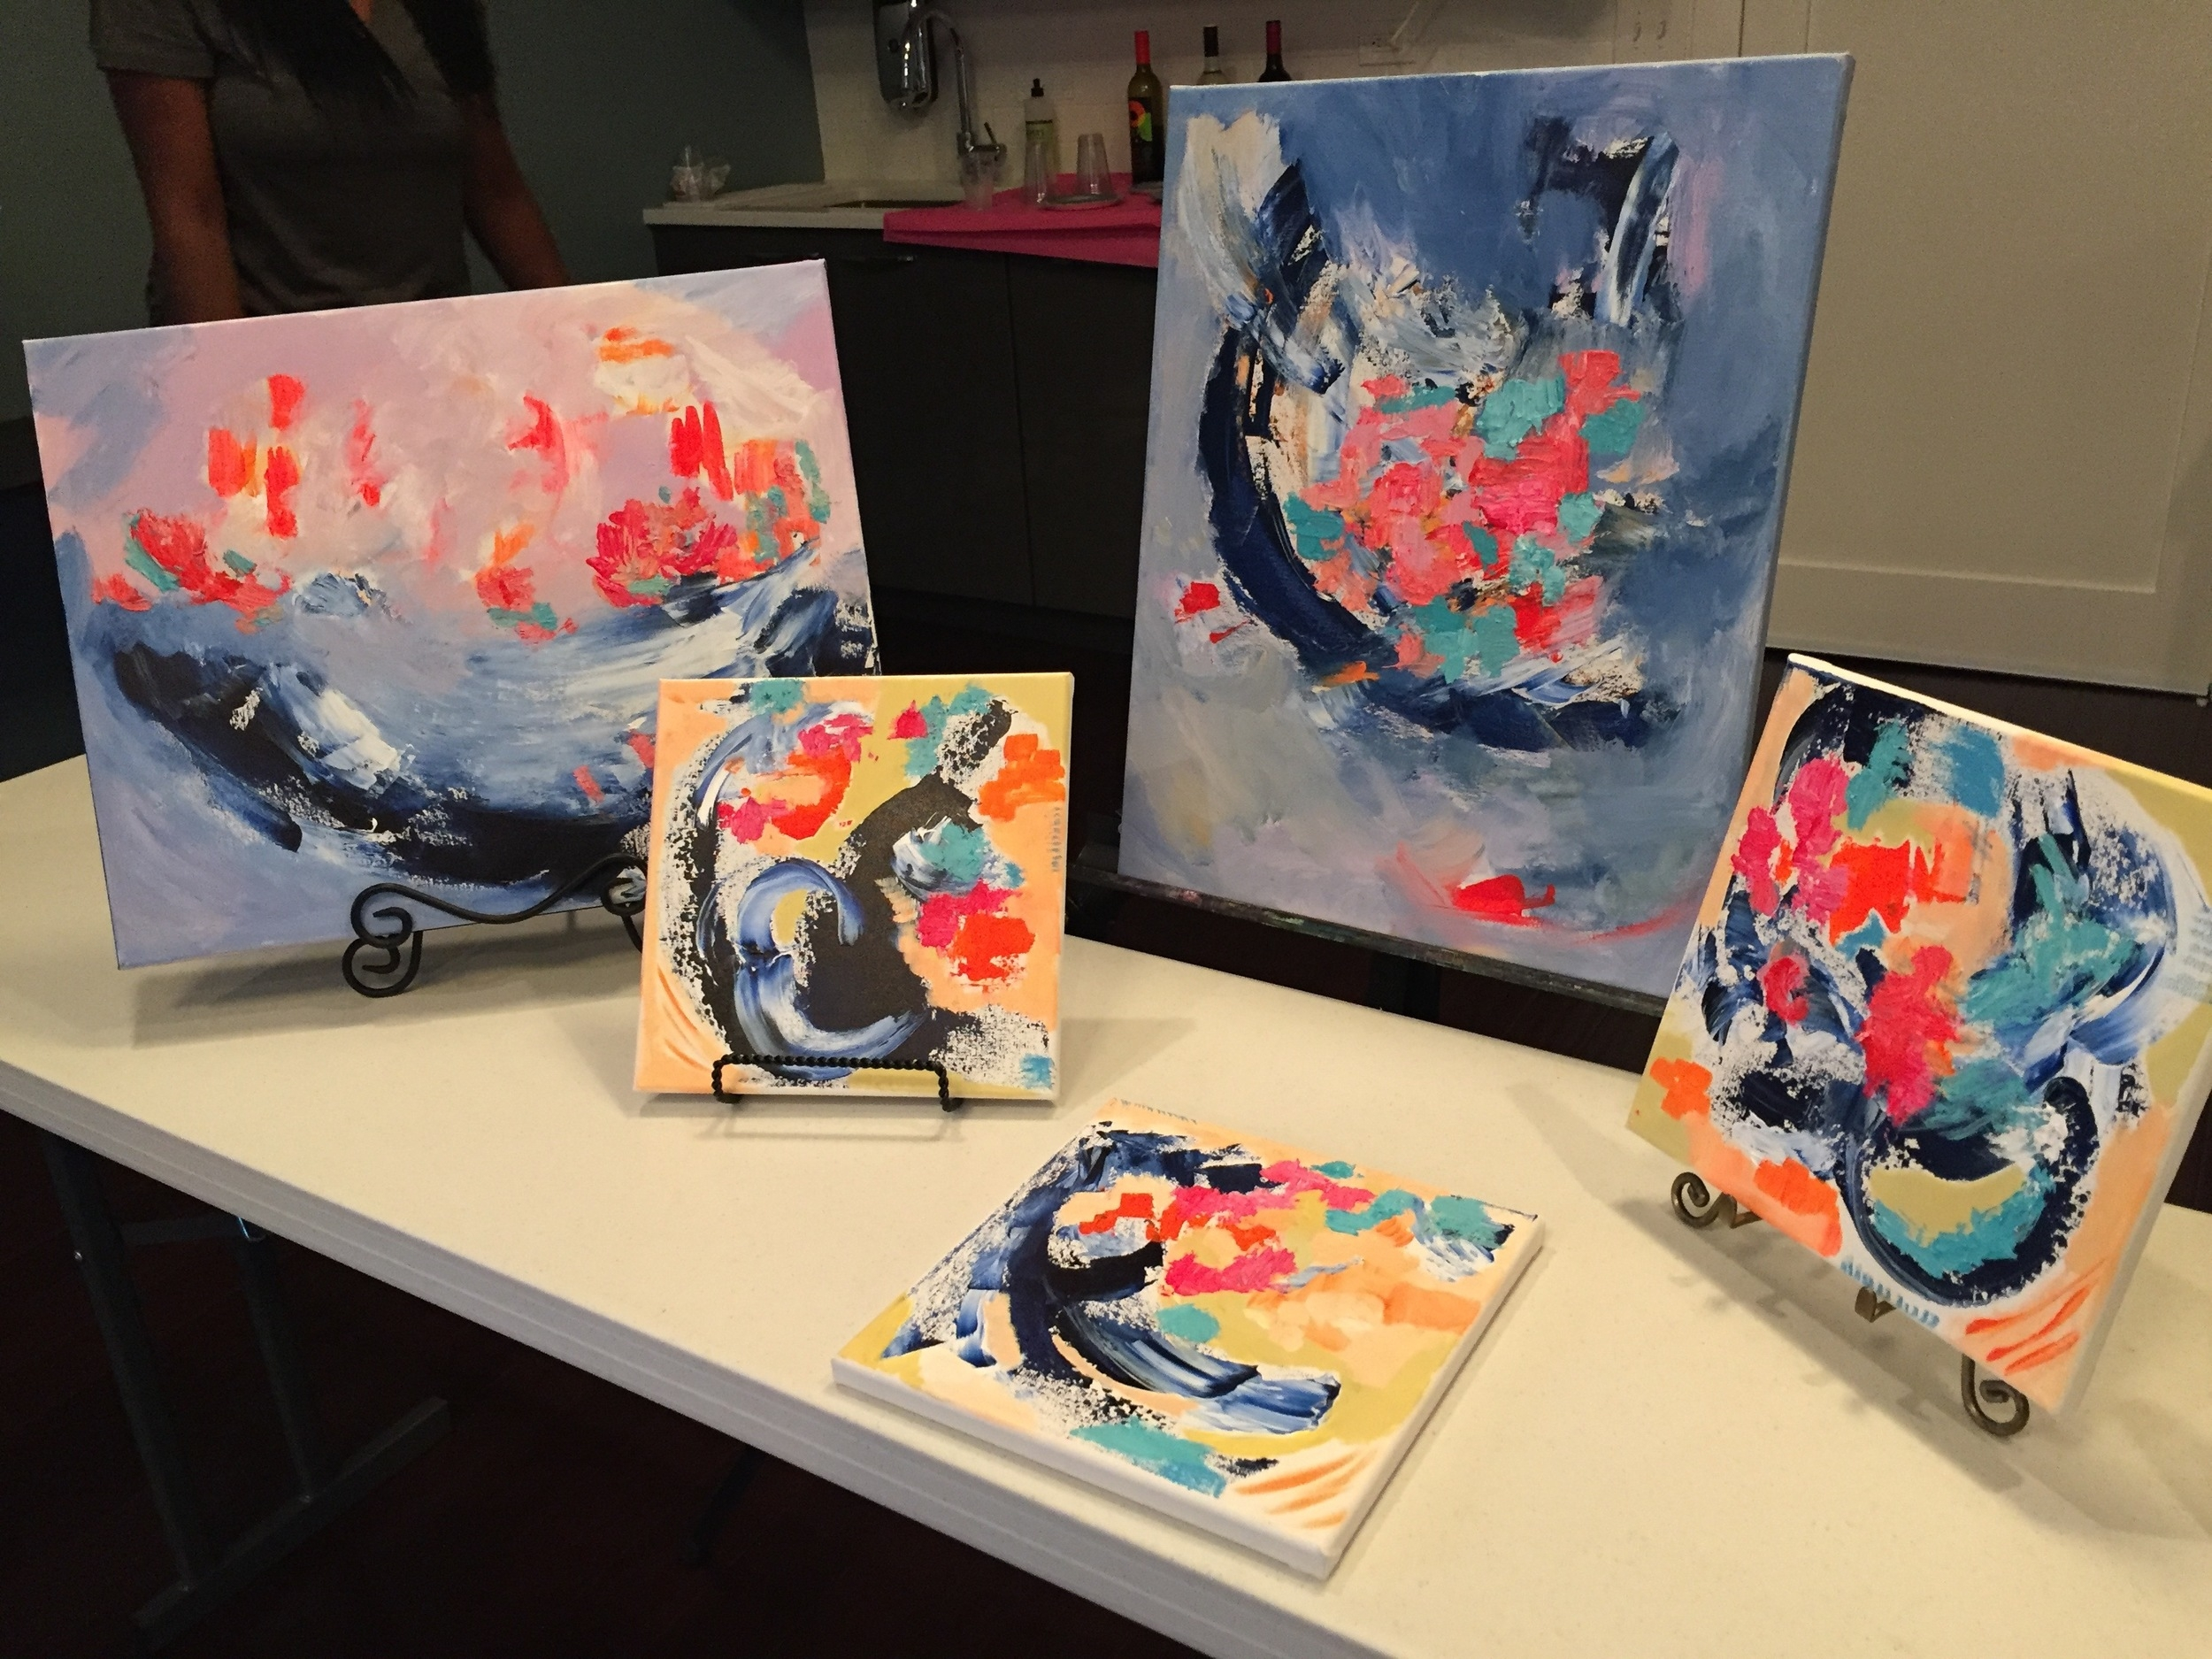 Pop-Up Art Gallery & Shop at Tribe, August 2016